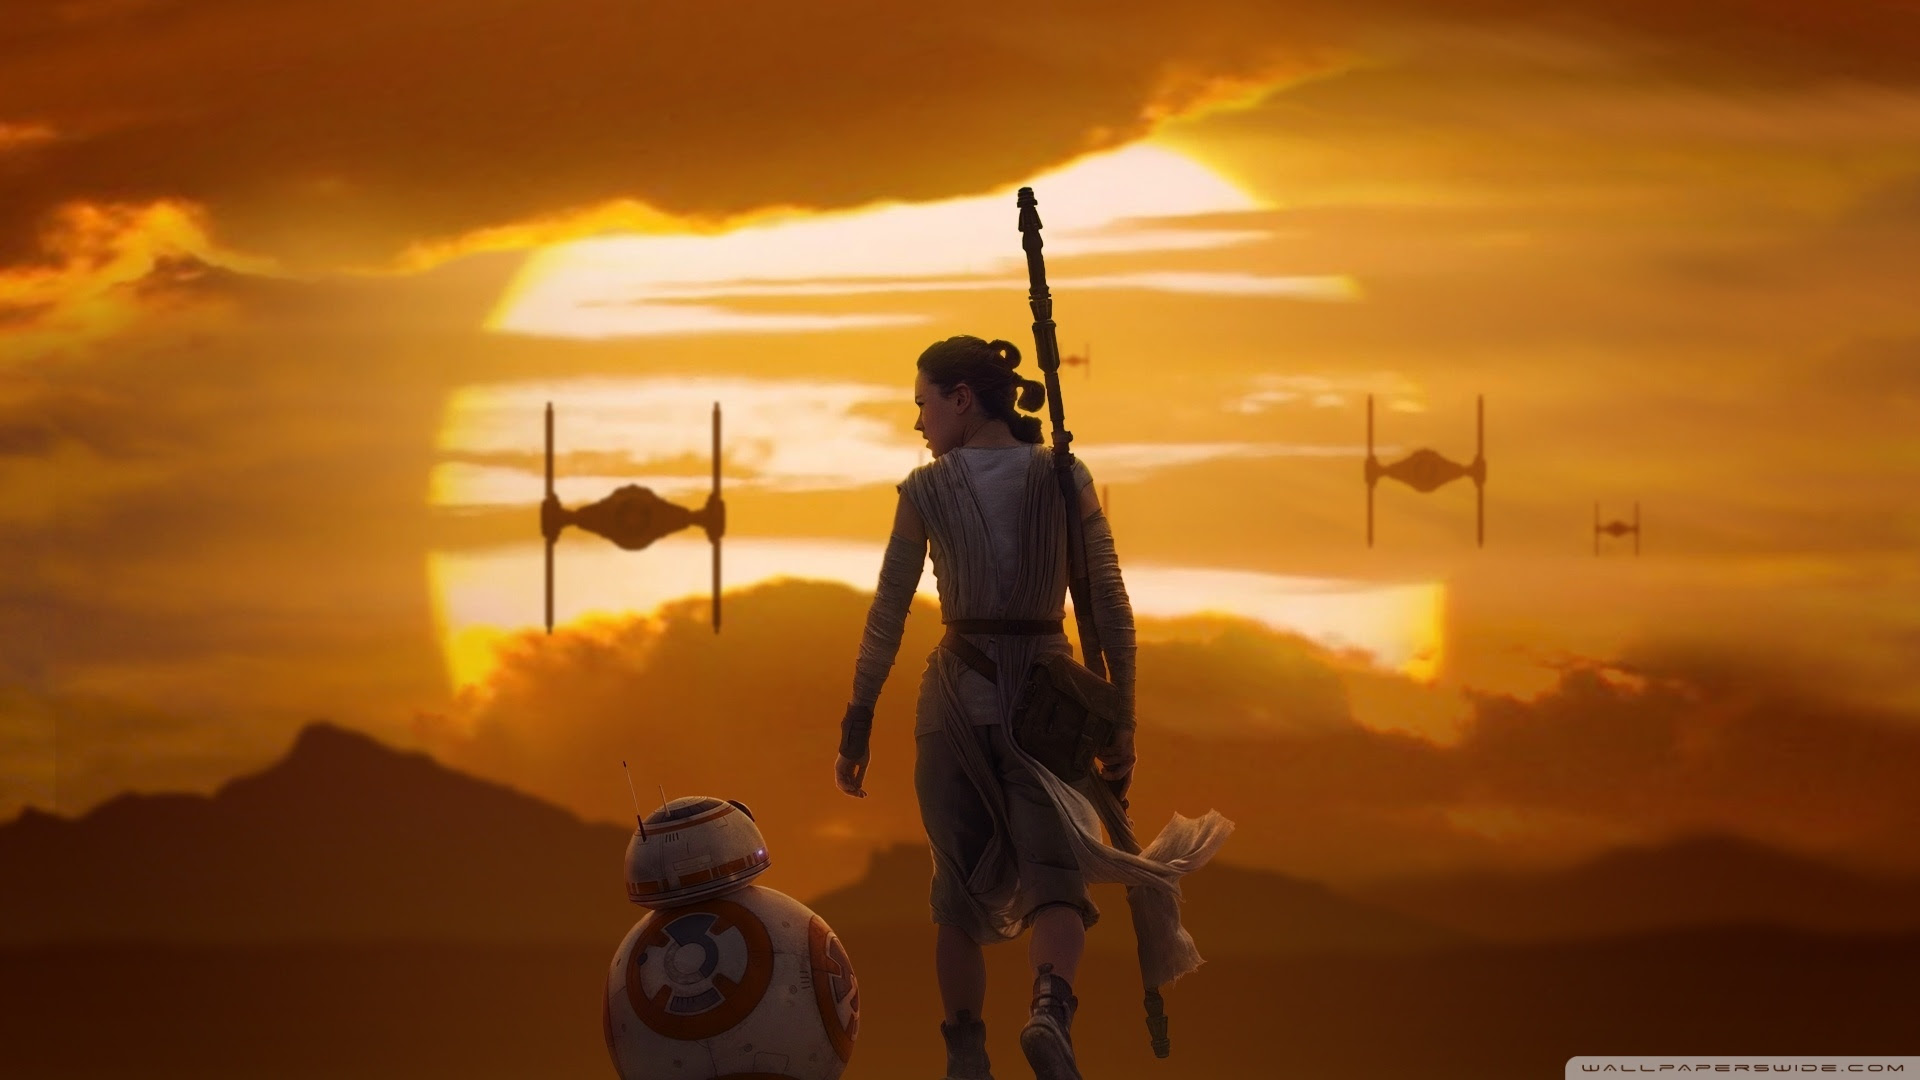 Rey Bb 8 Star Wars The Force Awakens Ultra Hd Desktop Background